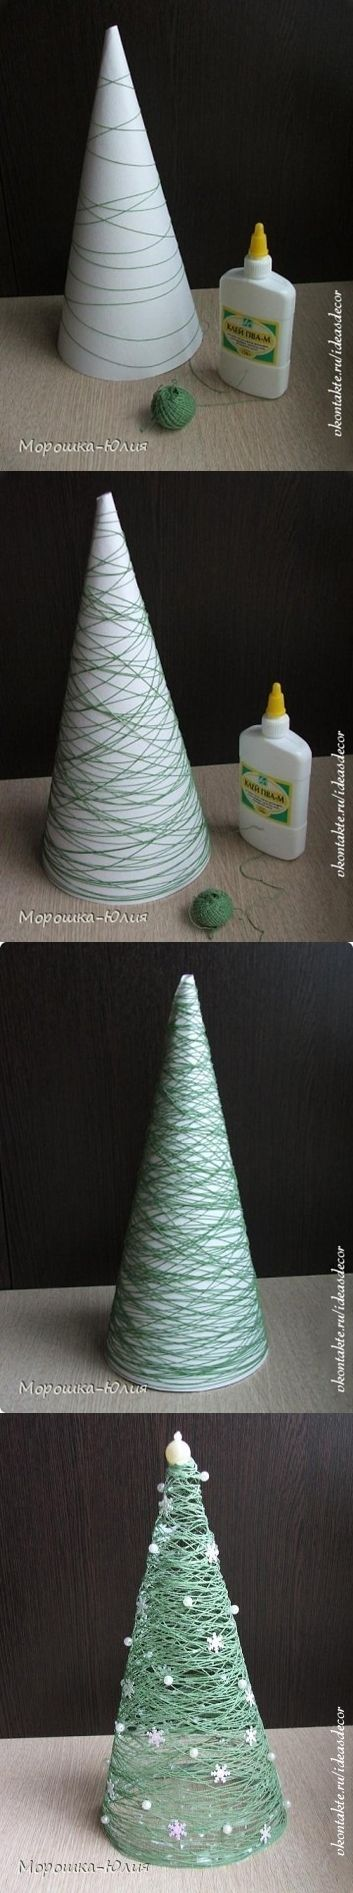 Christmas trees: Christmastre, Ideas, Xmas Trees, Christmas Crafts, Trees Crafts, Diy Christmas Trees, Christmas, Christmas Decor, String Christmas